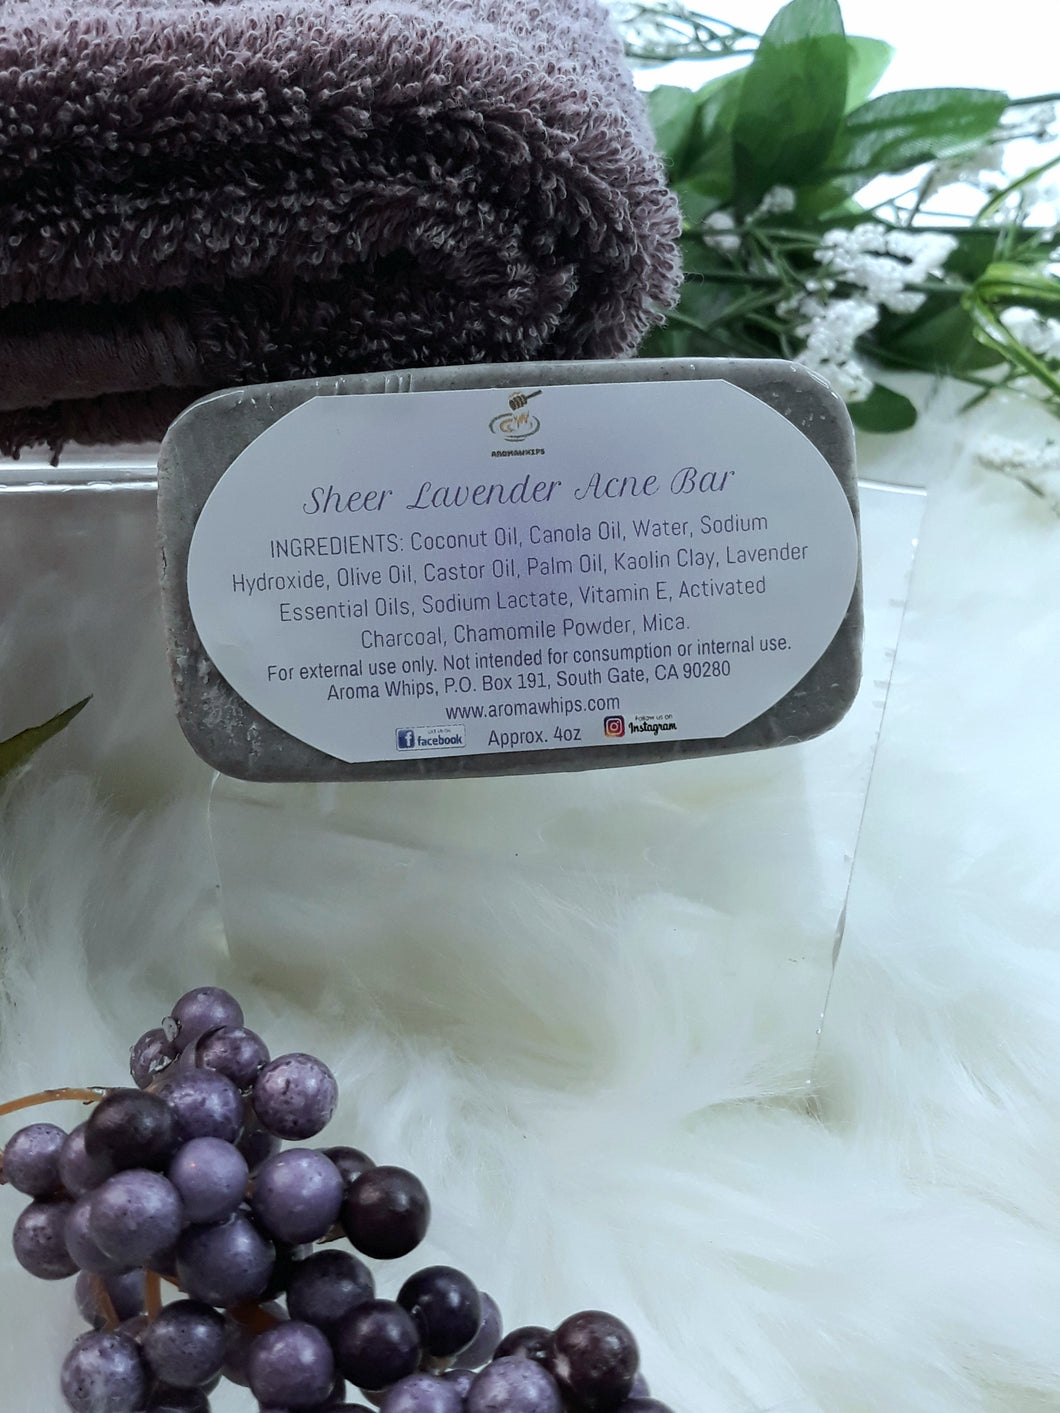 Sheer Lavender Acne Bar